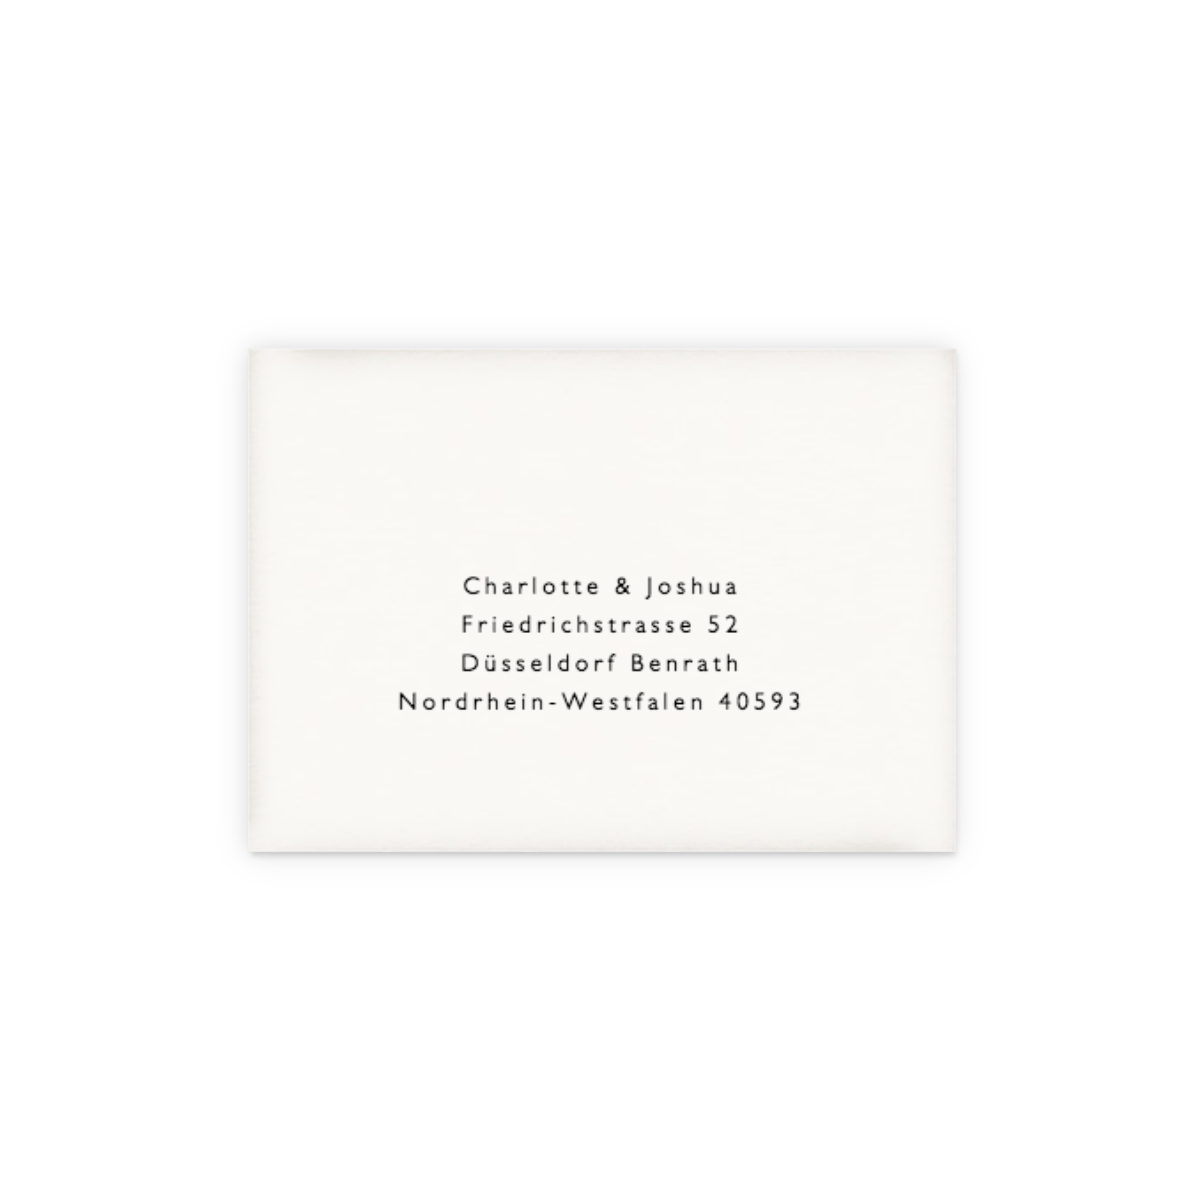 Https%3a%2f%2fwww.papier.com%2fproduct image%2f43431%2f12%2fclassic thin border 4079 rsvp briefumschlag 1535544893.png?ixlib=rb 1.1